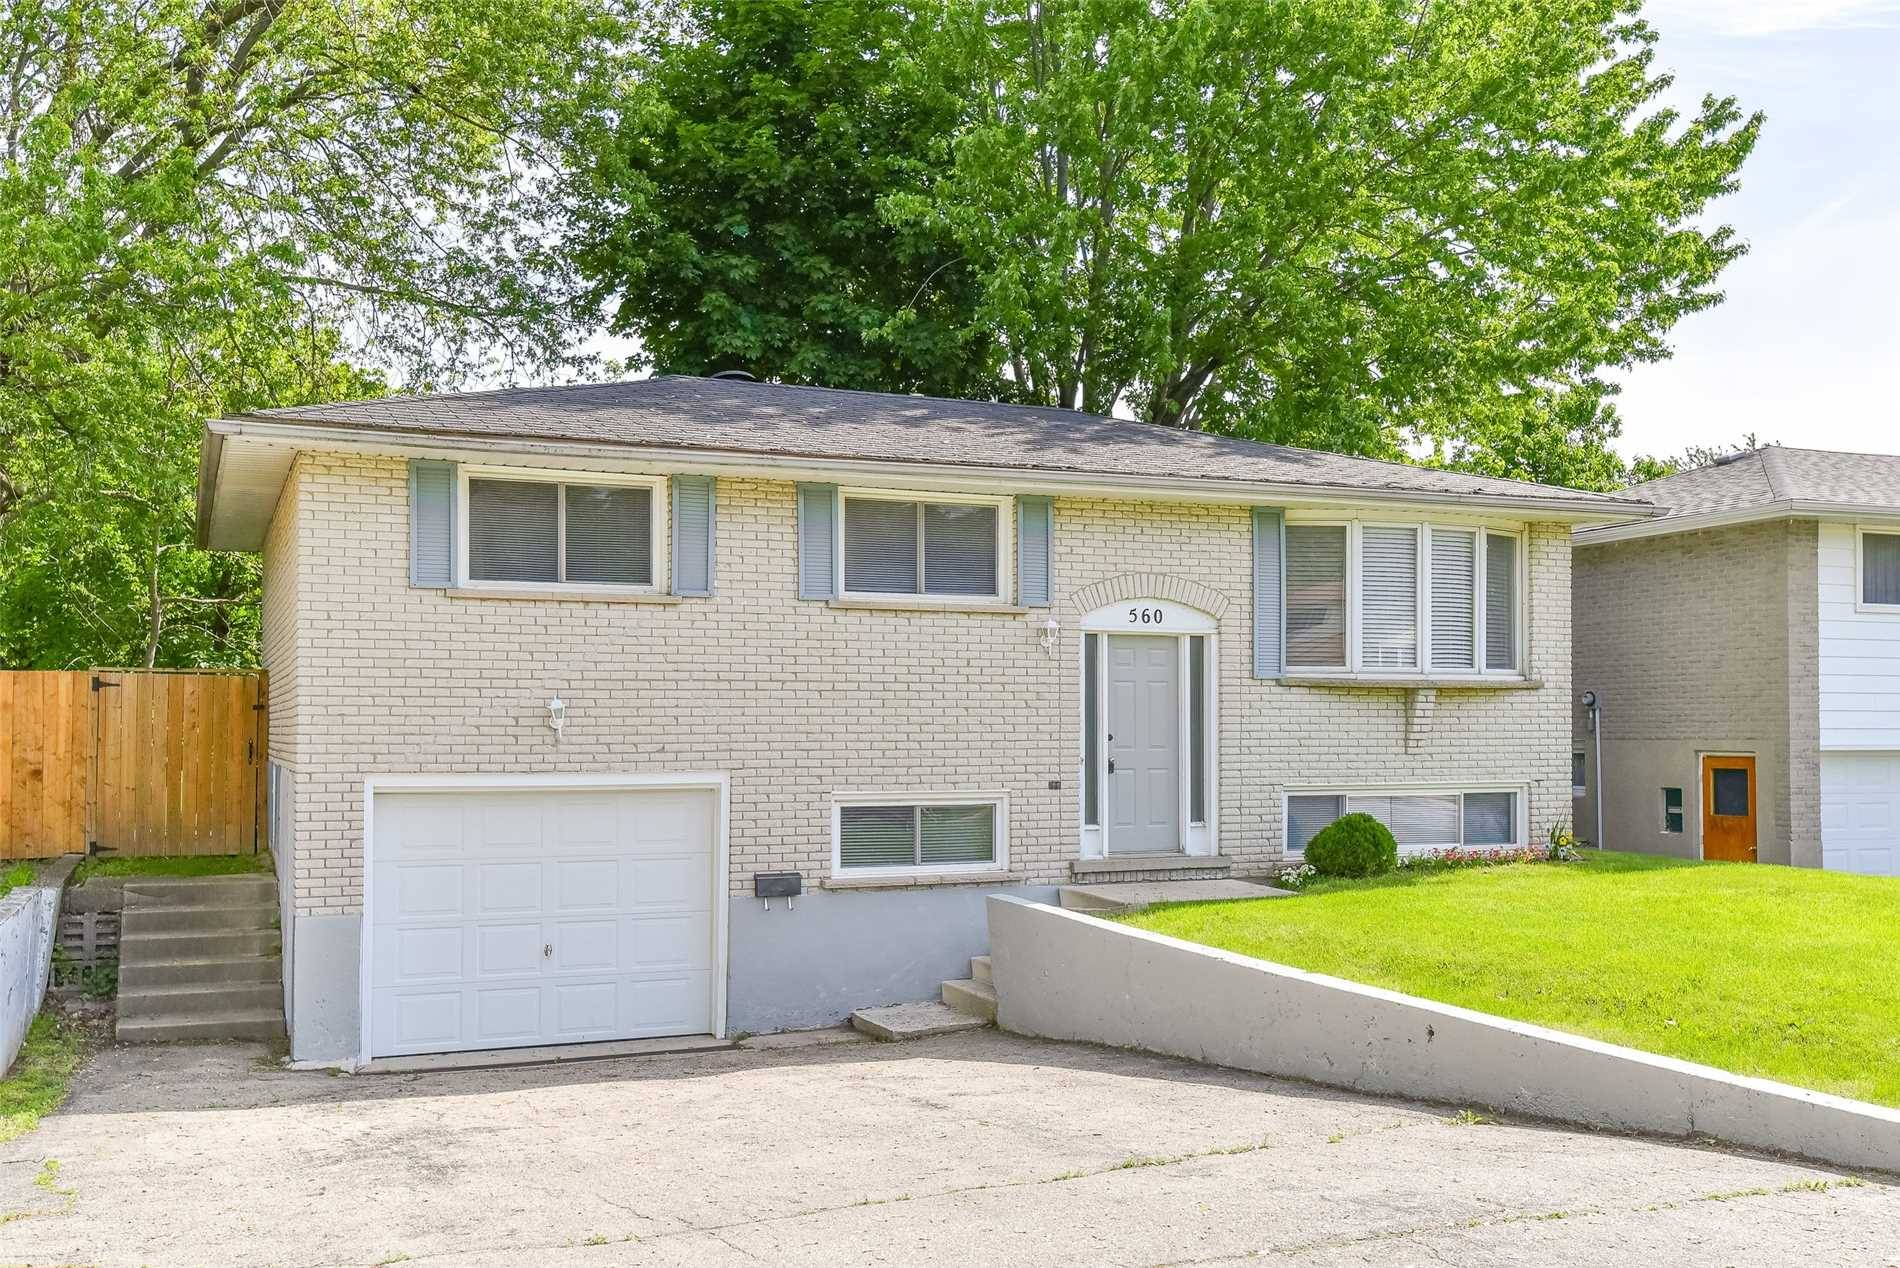 House for sale at 560 Glen Forrest Blvd Waterloo Ontario - MLS: X4479586